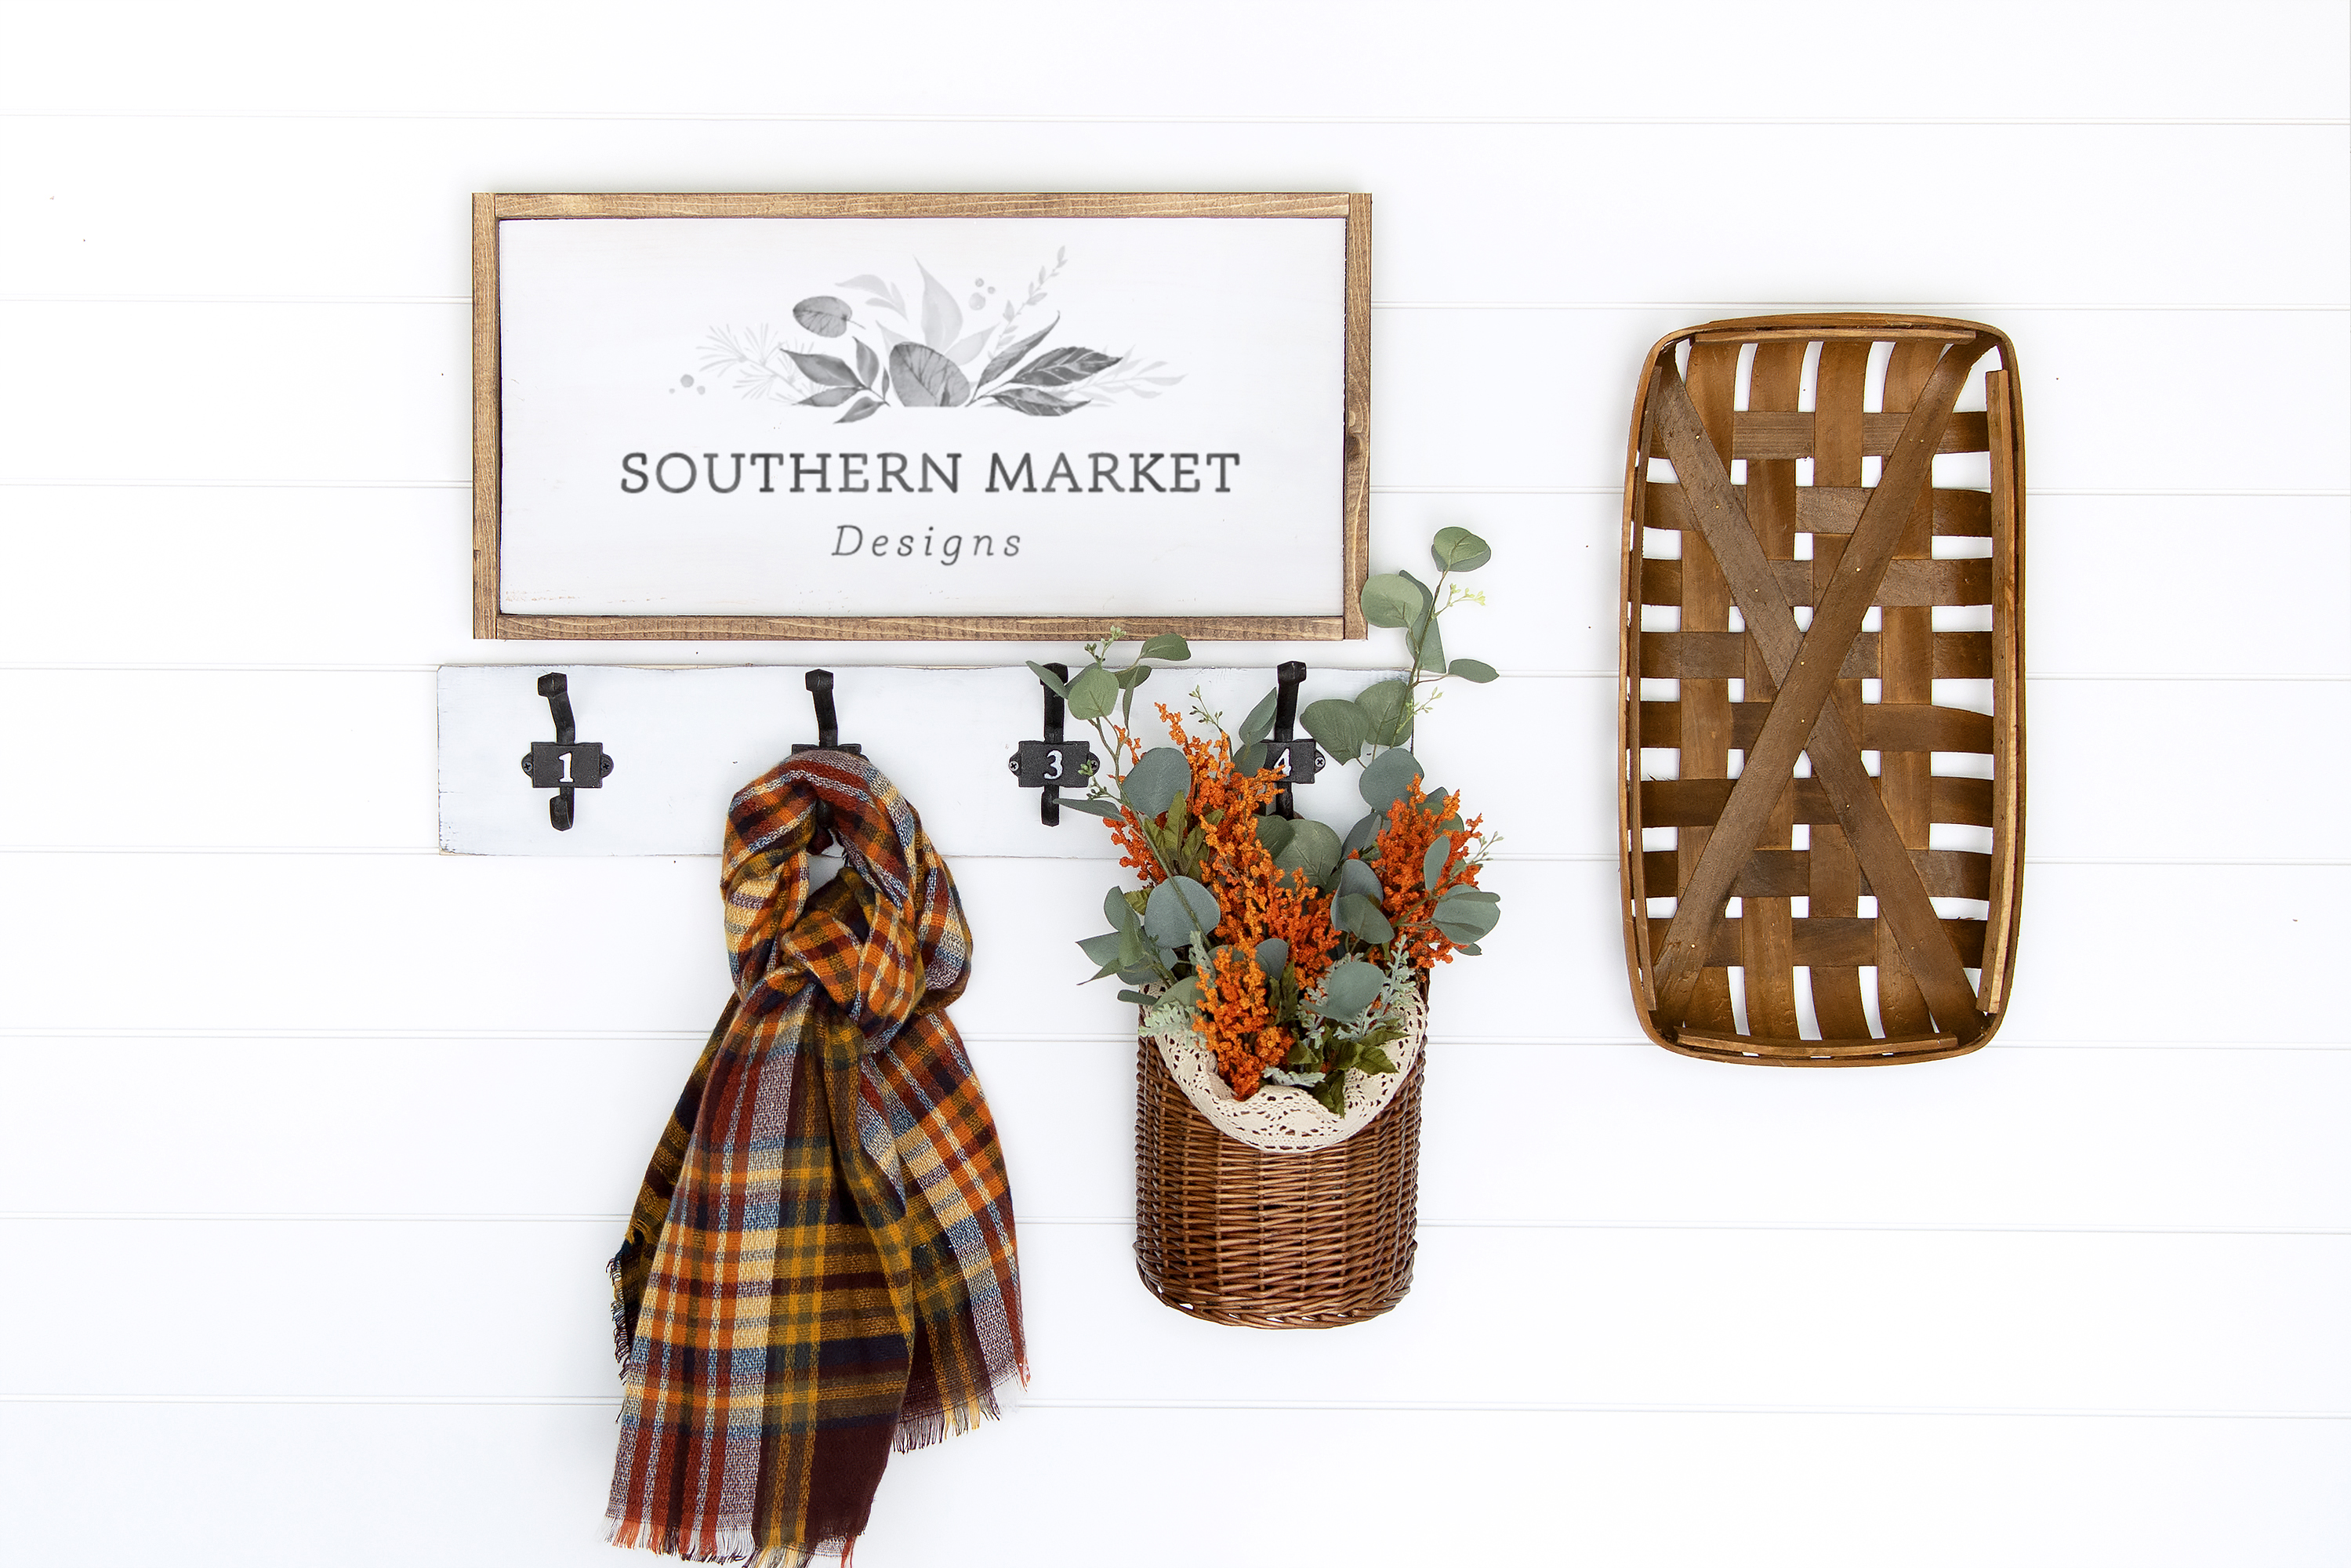 Fall Stained 12x24 Wood Sign Mock Up Stock Photo example image 1